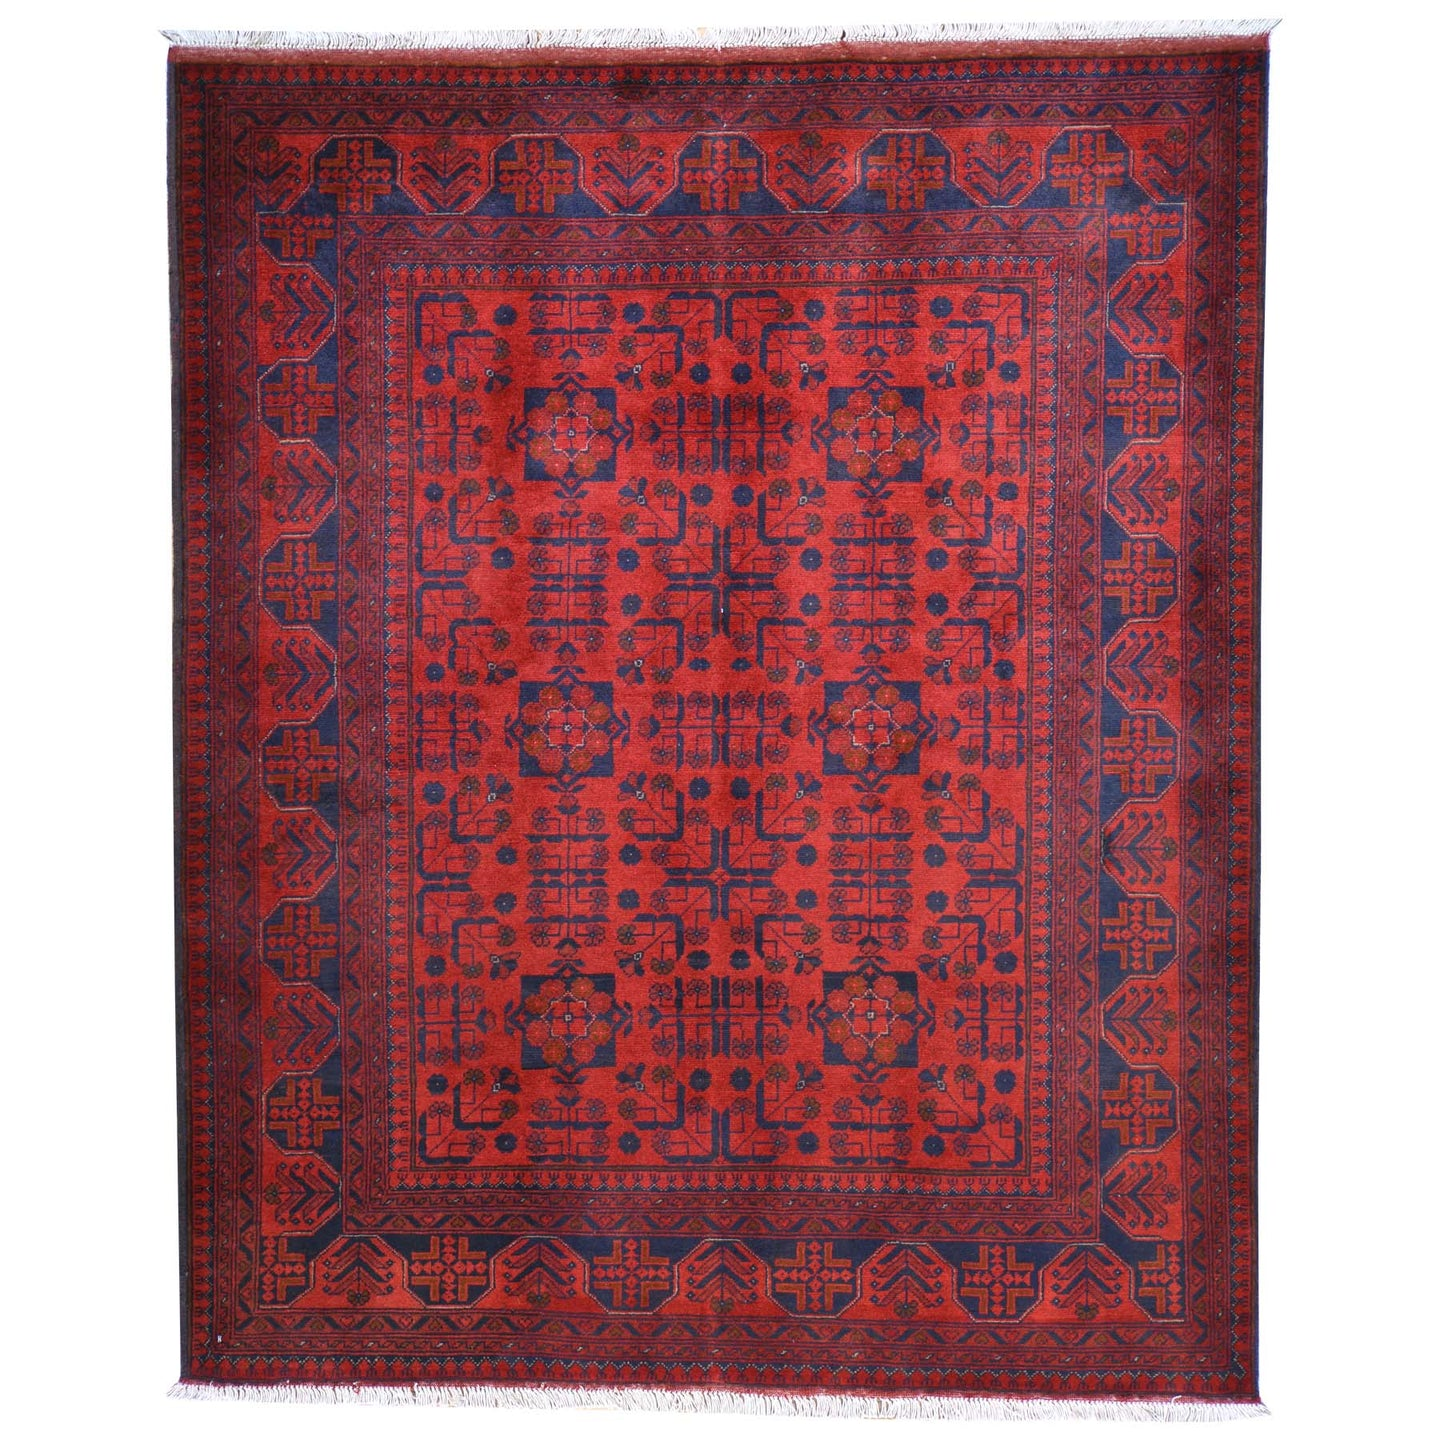 Oriental rugs, hand-knotted carpets, sustainable rugs, classic world oriental rugs, handmade, United States, interior design,  Brral-6498